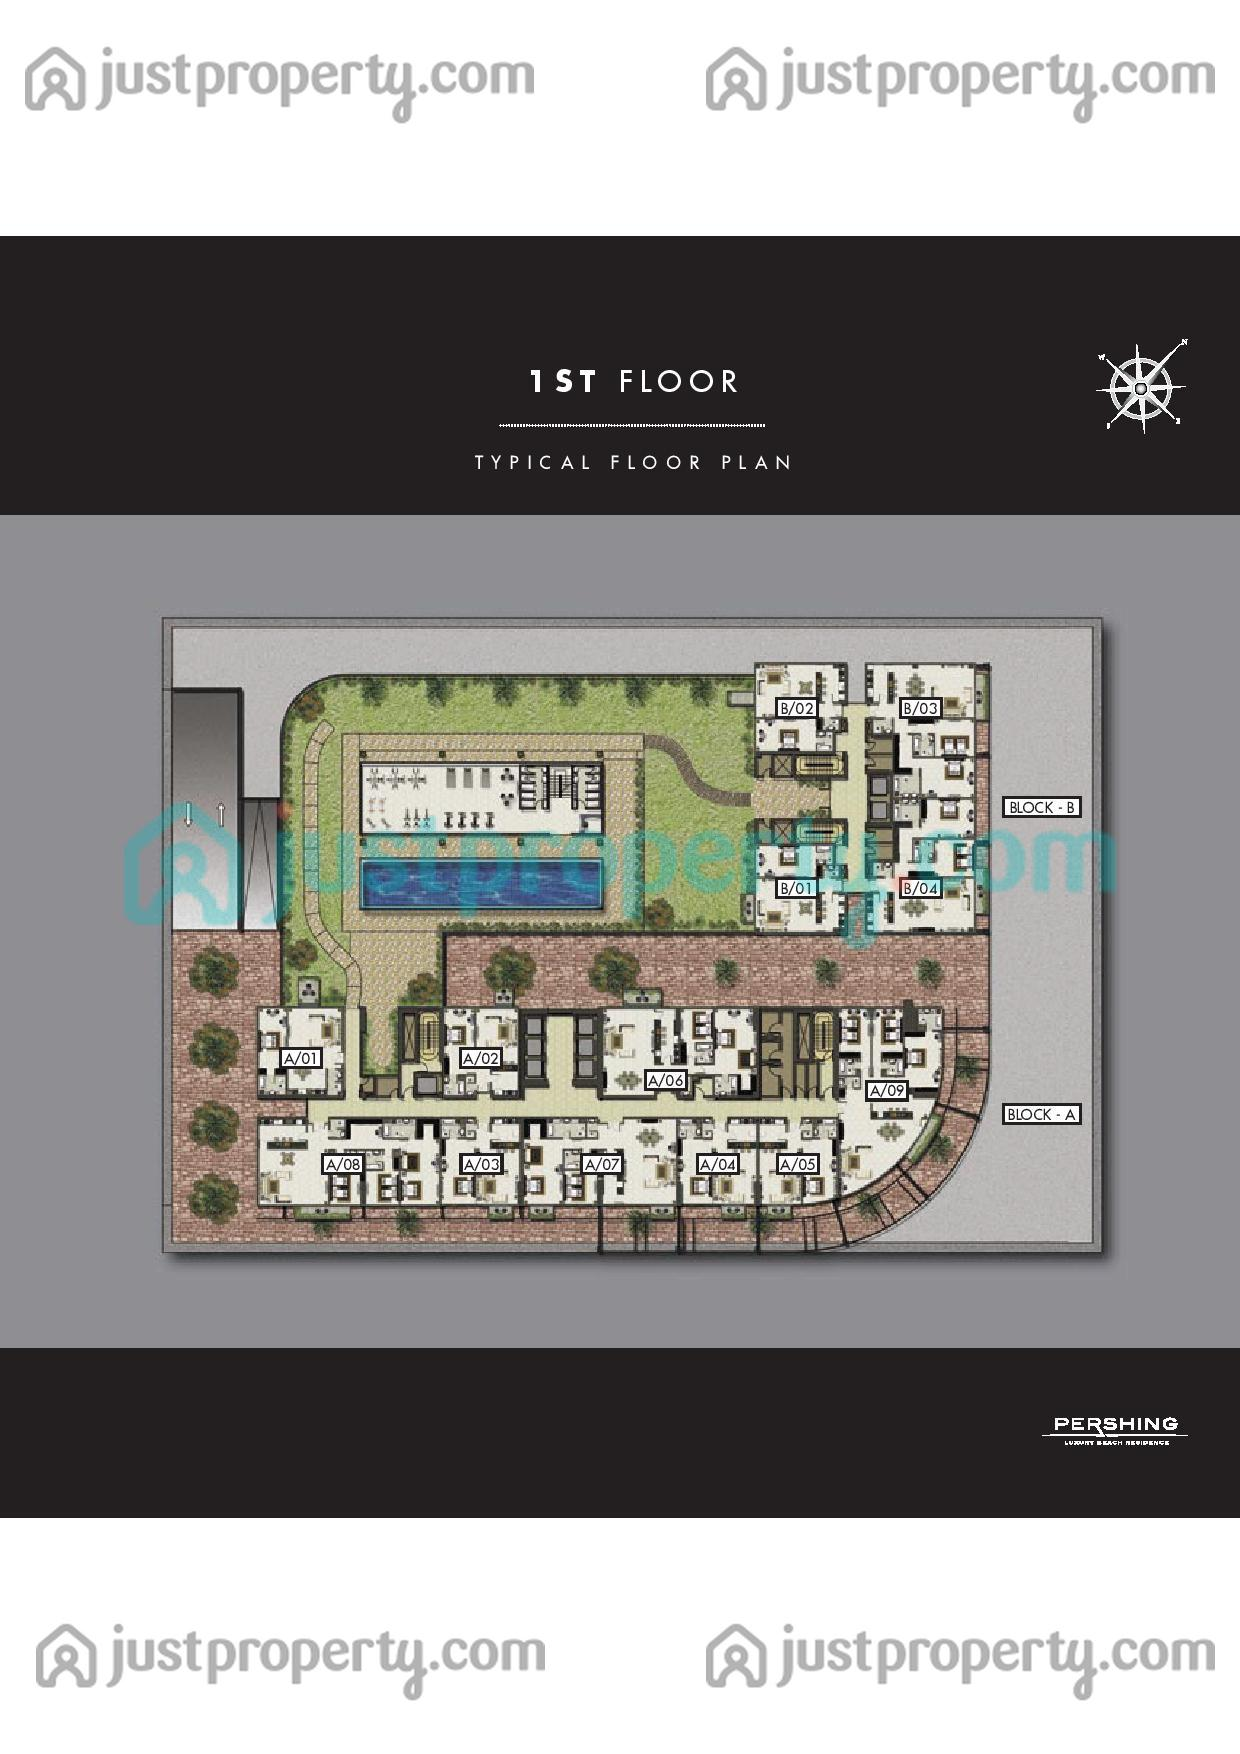 Floor Plans for Pershing Luxury Residences Pershing